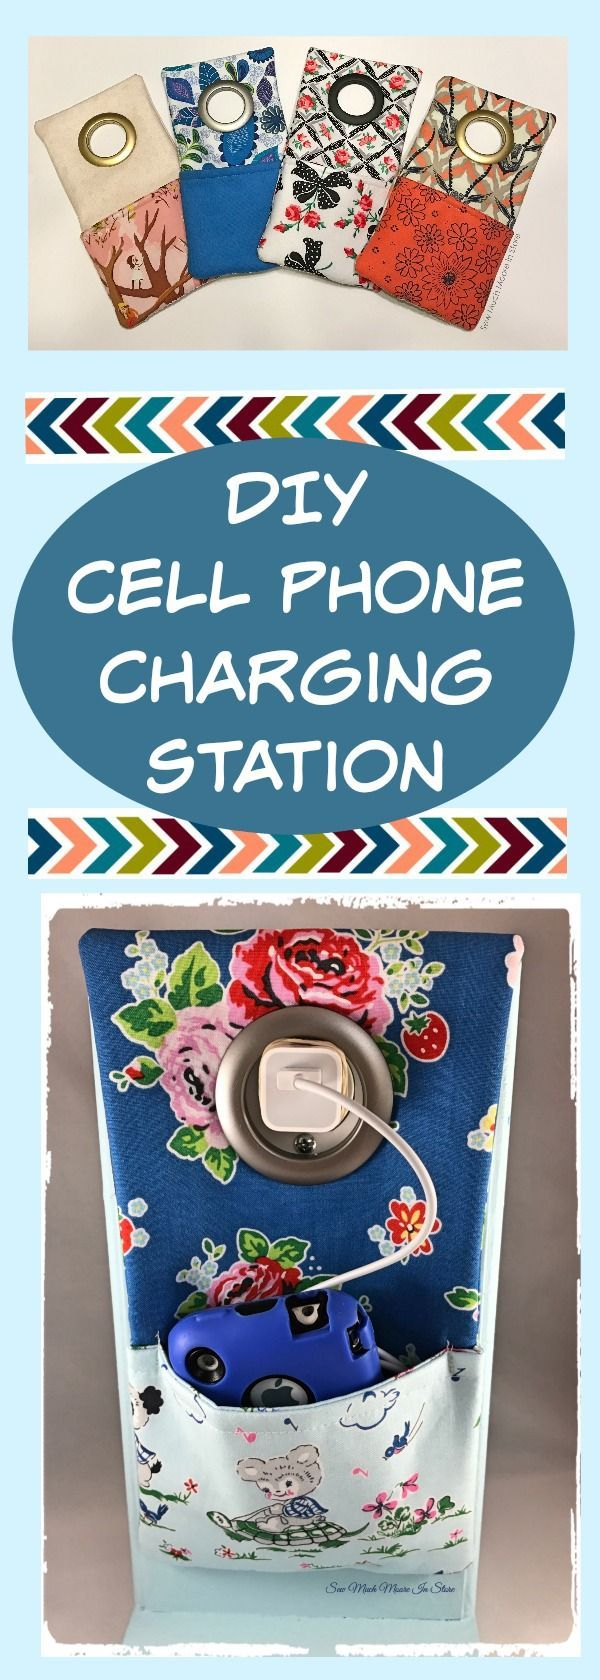 DIY Cell Phone Charging Station. You have the choice between a Ready to Sew kit or a Free Pattern Download. You can use your fabric scraps to make this fun and functional project. Makes a great teen or tween gift too! Perfect sewing kit for the beginning sewer / sewist.